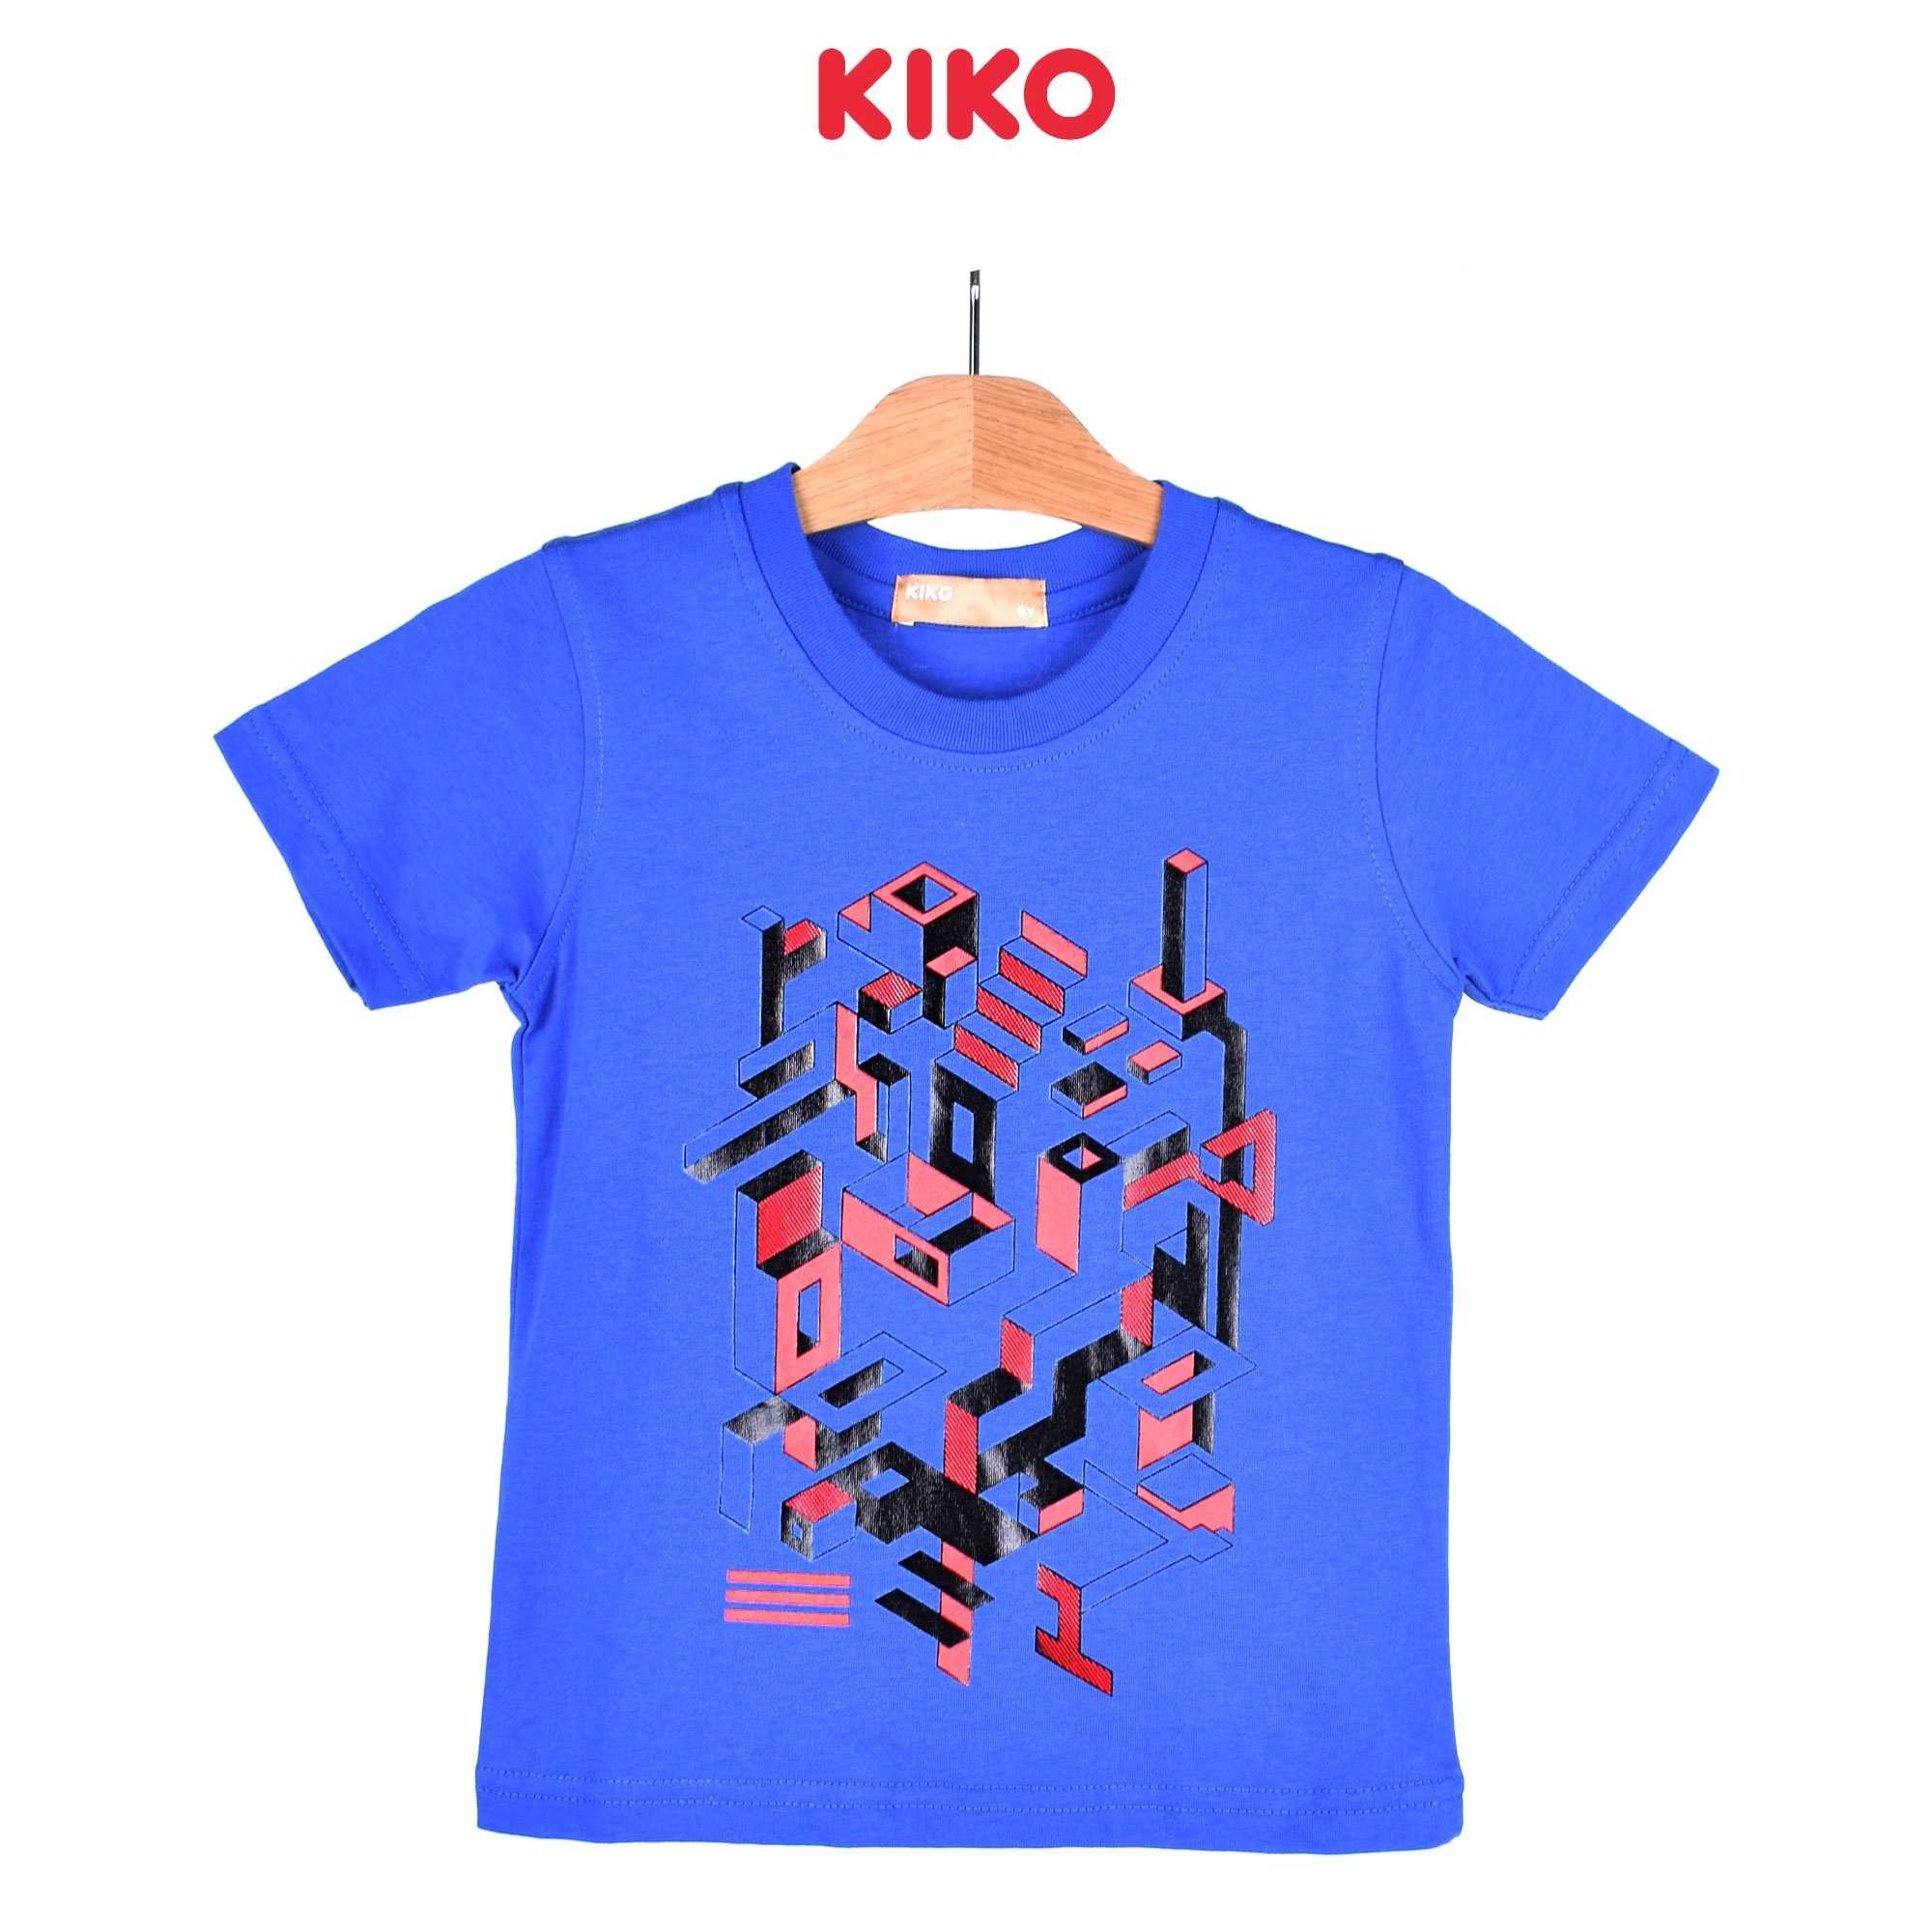 KIKO Boy Short Sleeve Tee - Blue 121251-112 : Buy KIKO online at CMG.MY